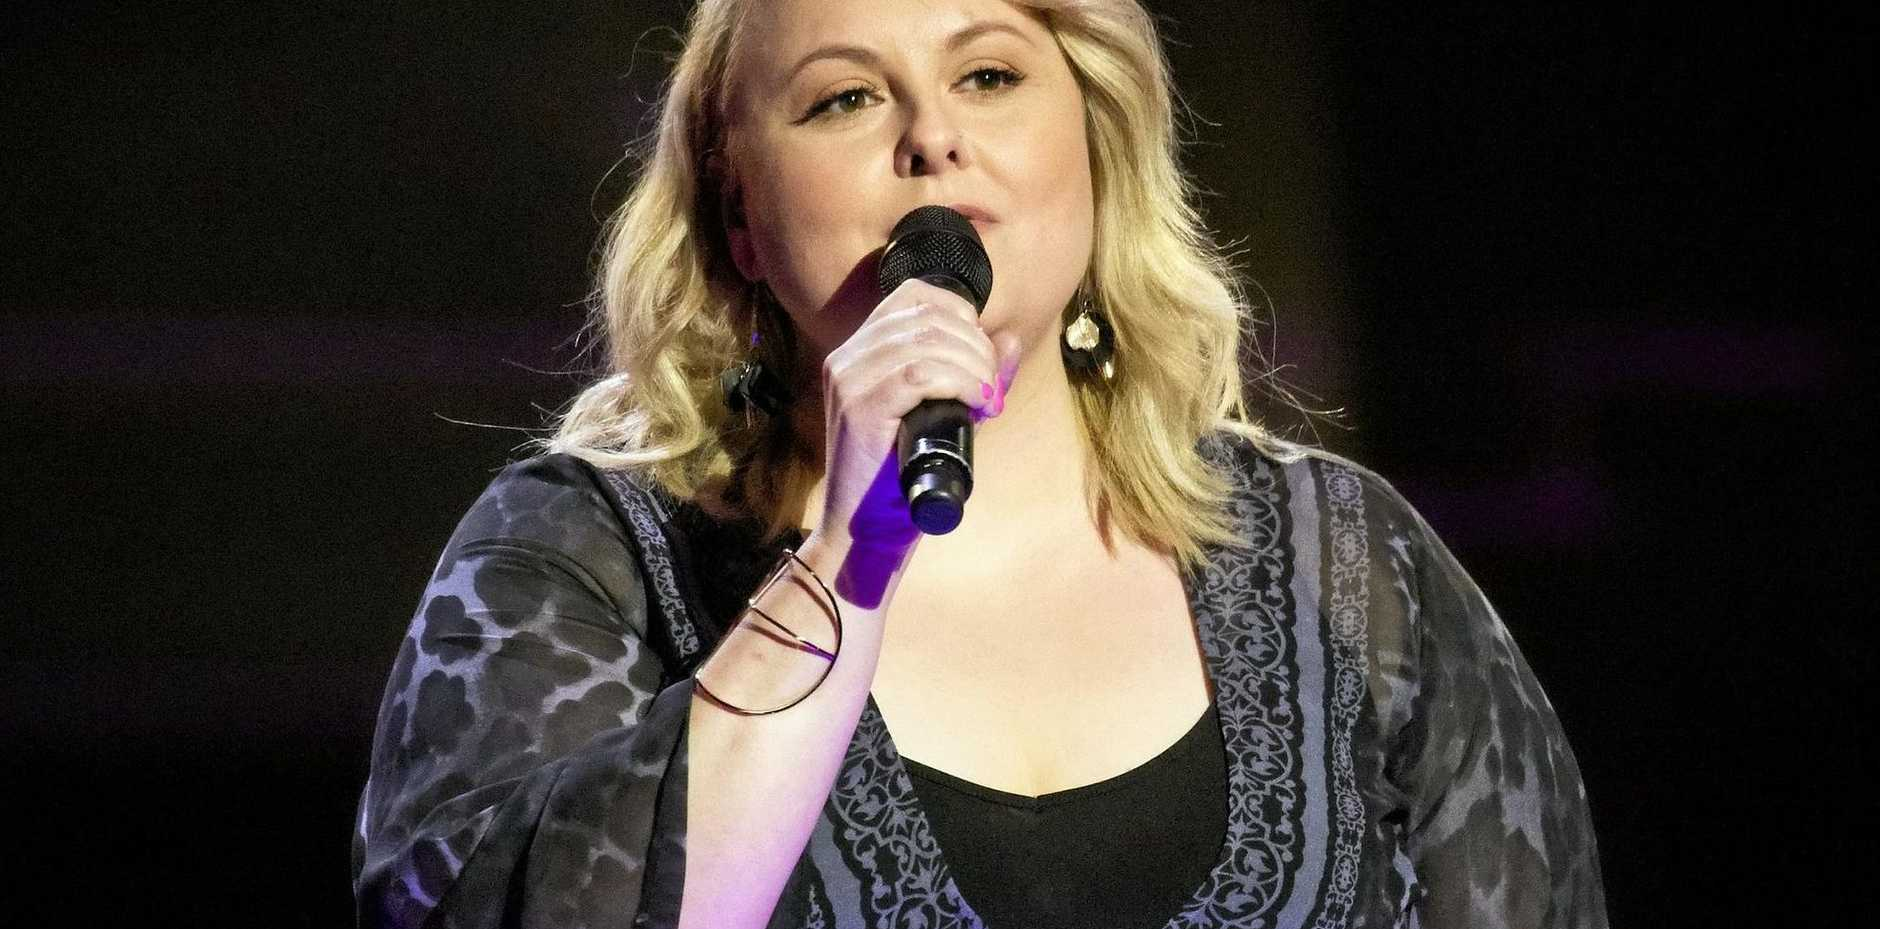 ONWARDS AND UPWARDS: Lyn Bowtell is through to the battle rounds on The Voice.